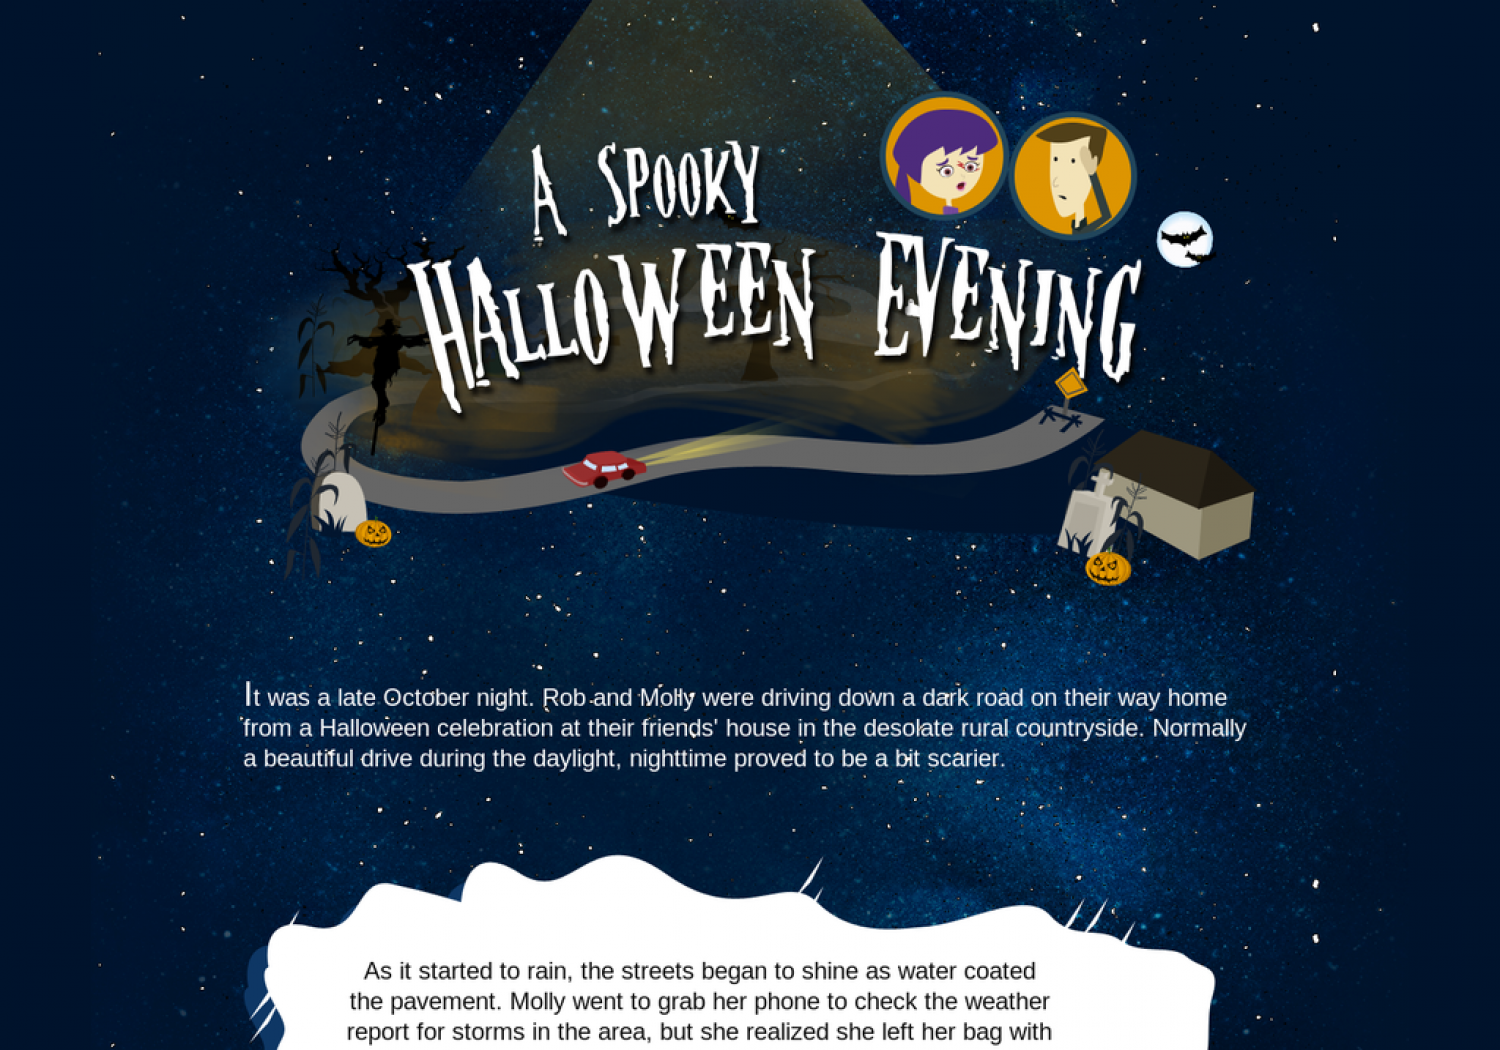 A Spooky Halloween Evening Infographic